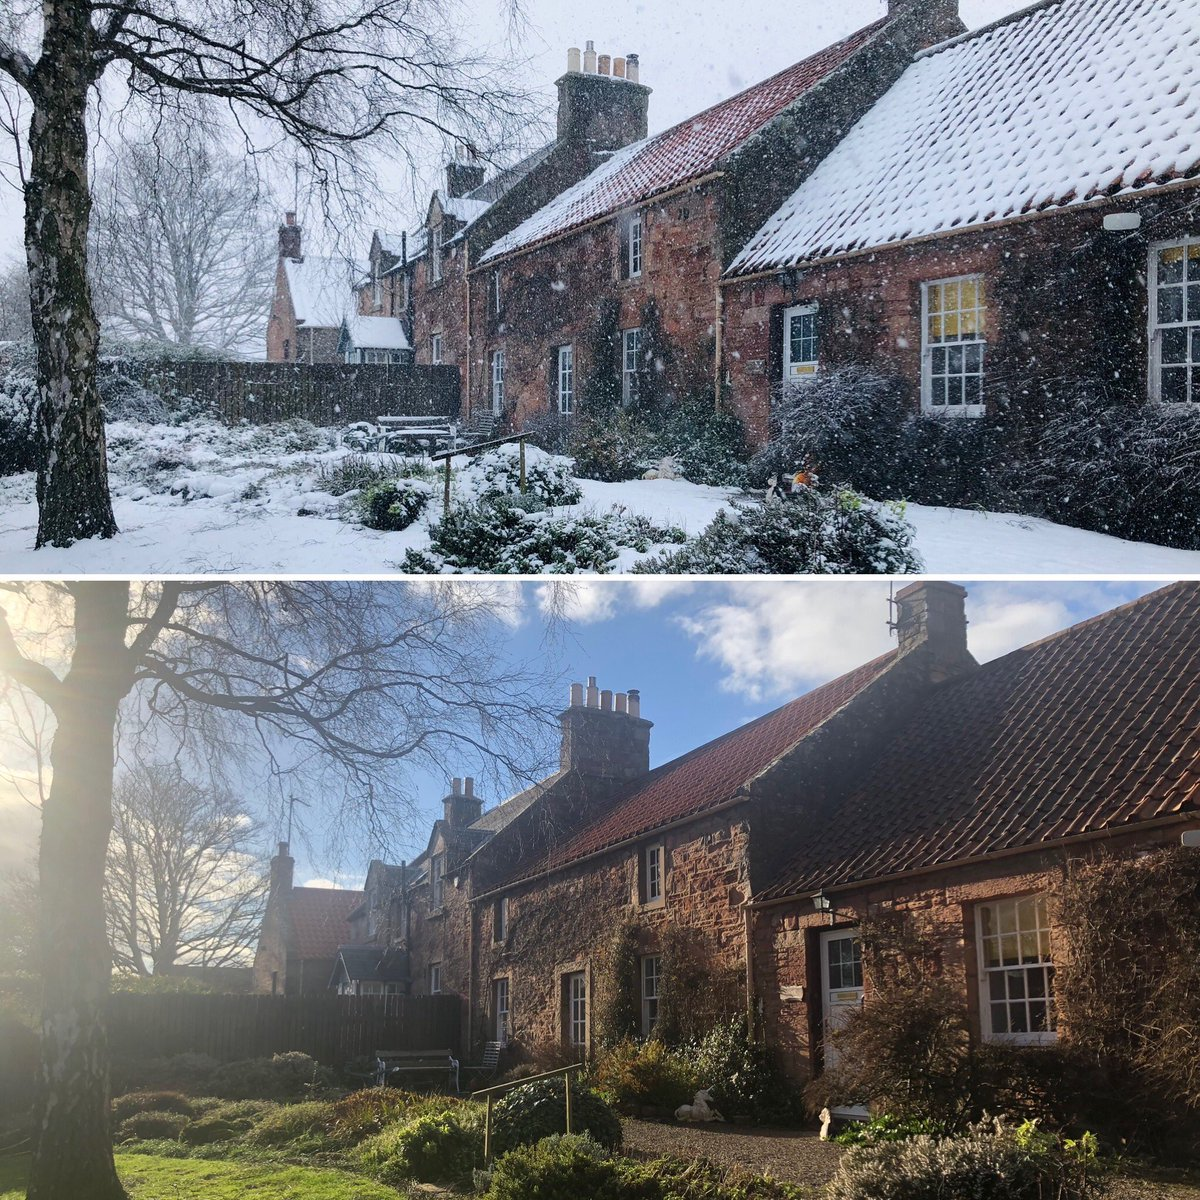 The difference a few days can make! ☃️☀️ #eastlothian #tyninghame #snow #sun